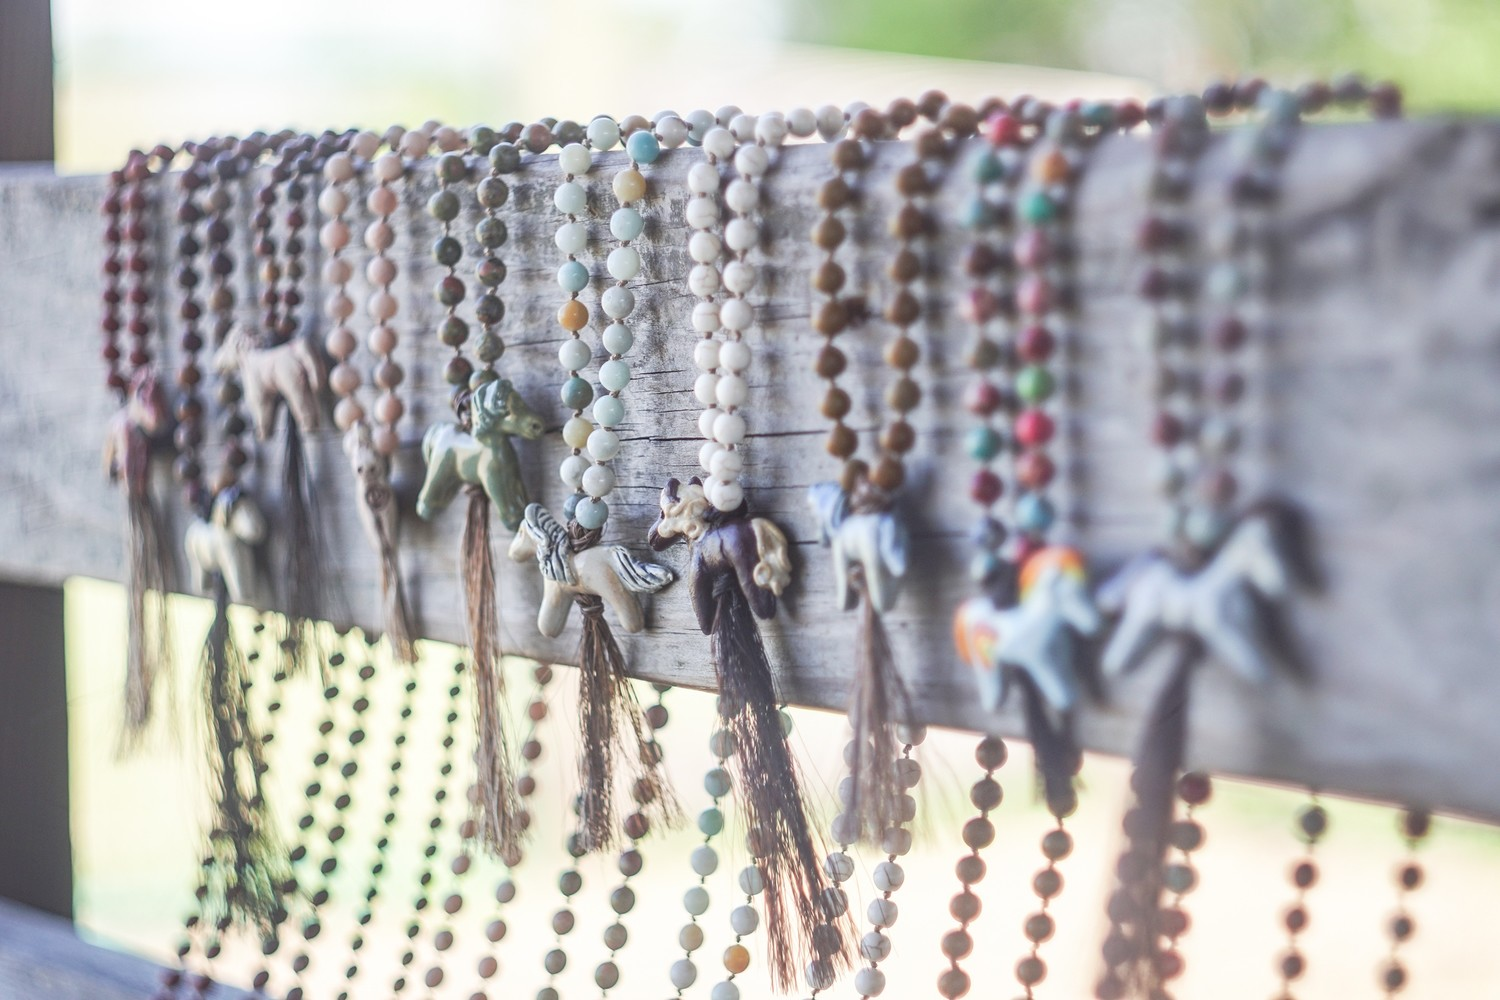 Custom Mustang Mala created for YOU from your Horse's hair! - All Money is Donated to I AM HERD Mustang Sanctuary